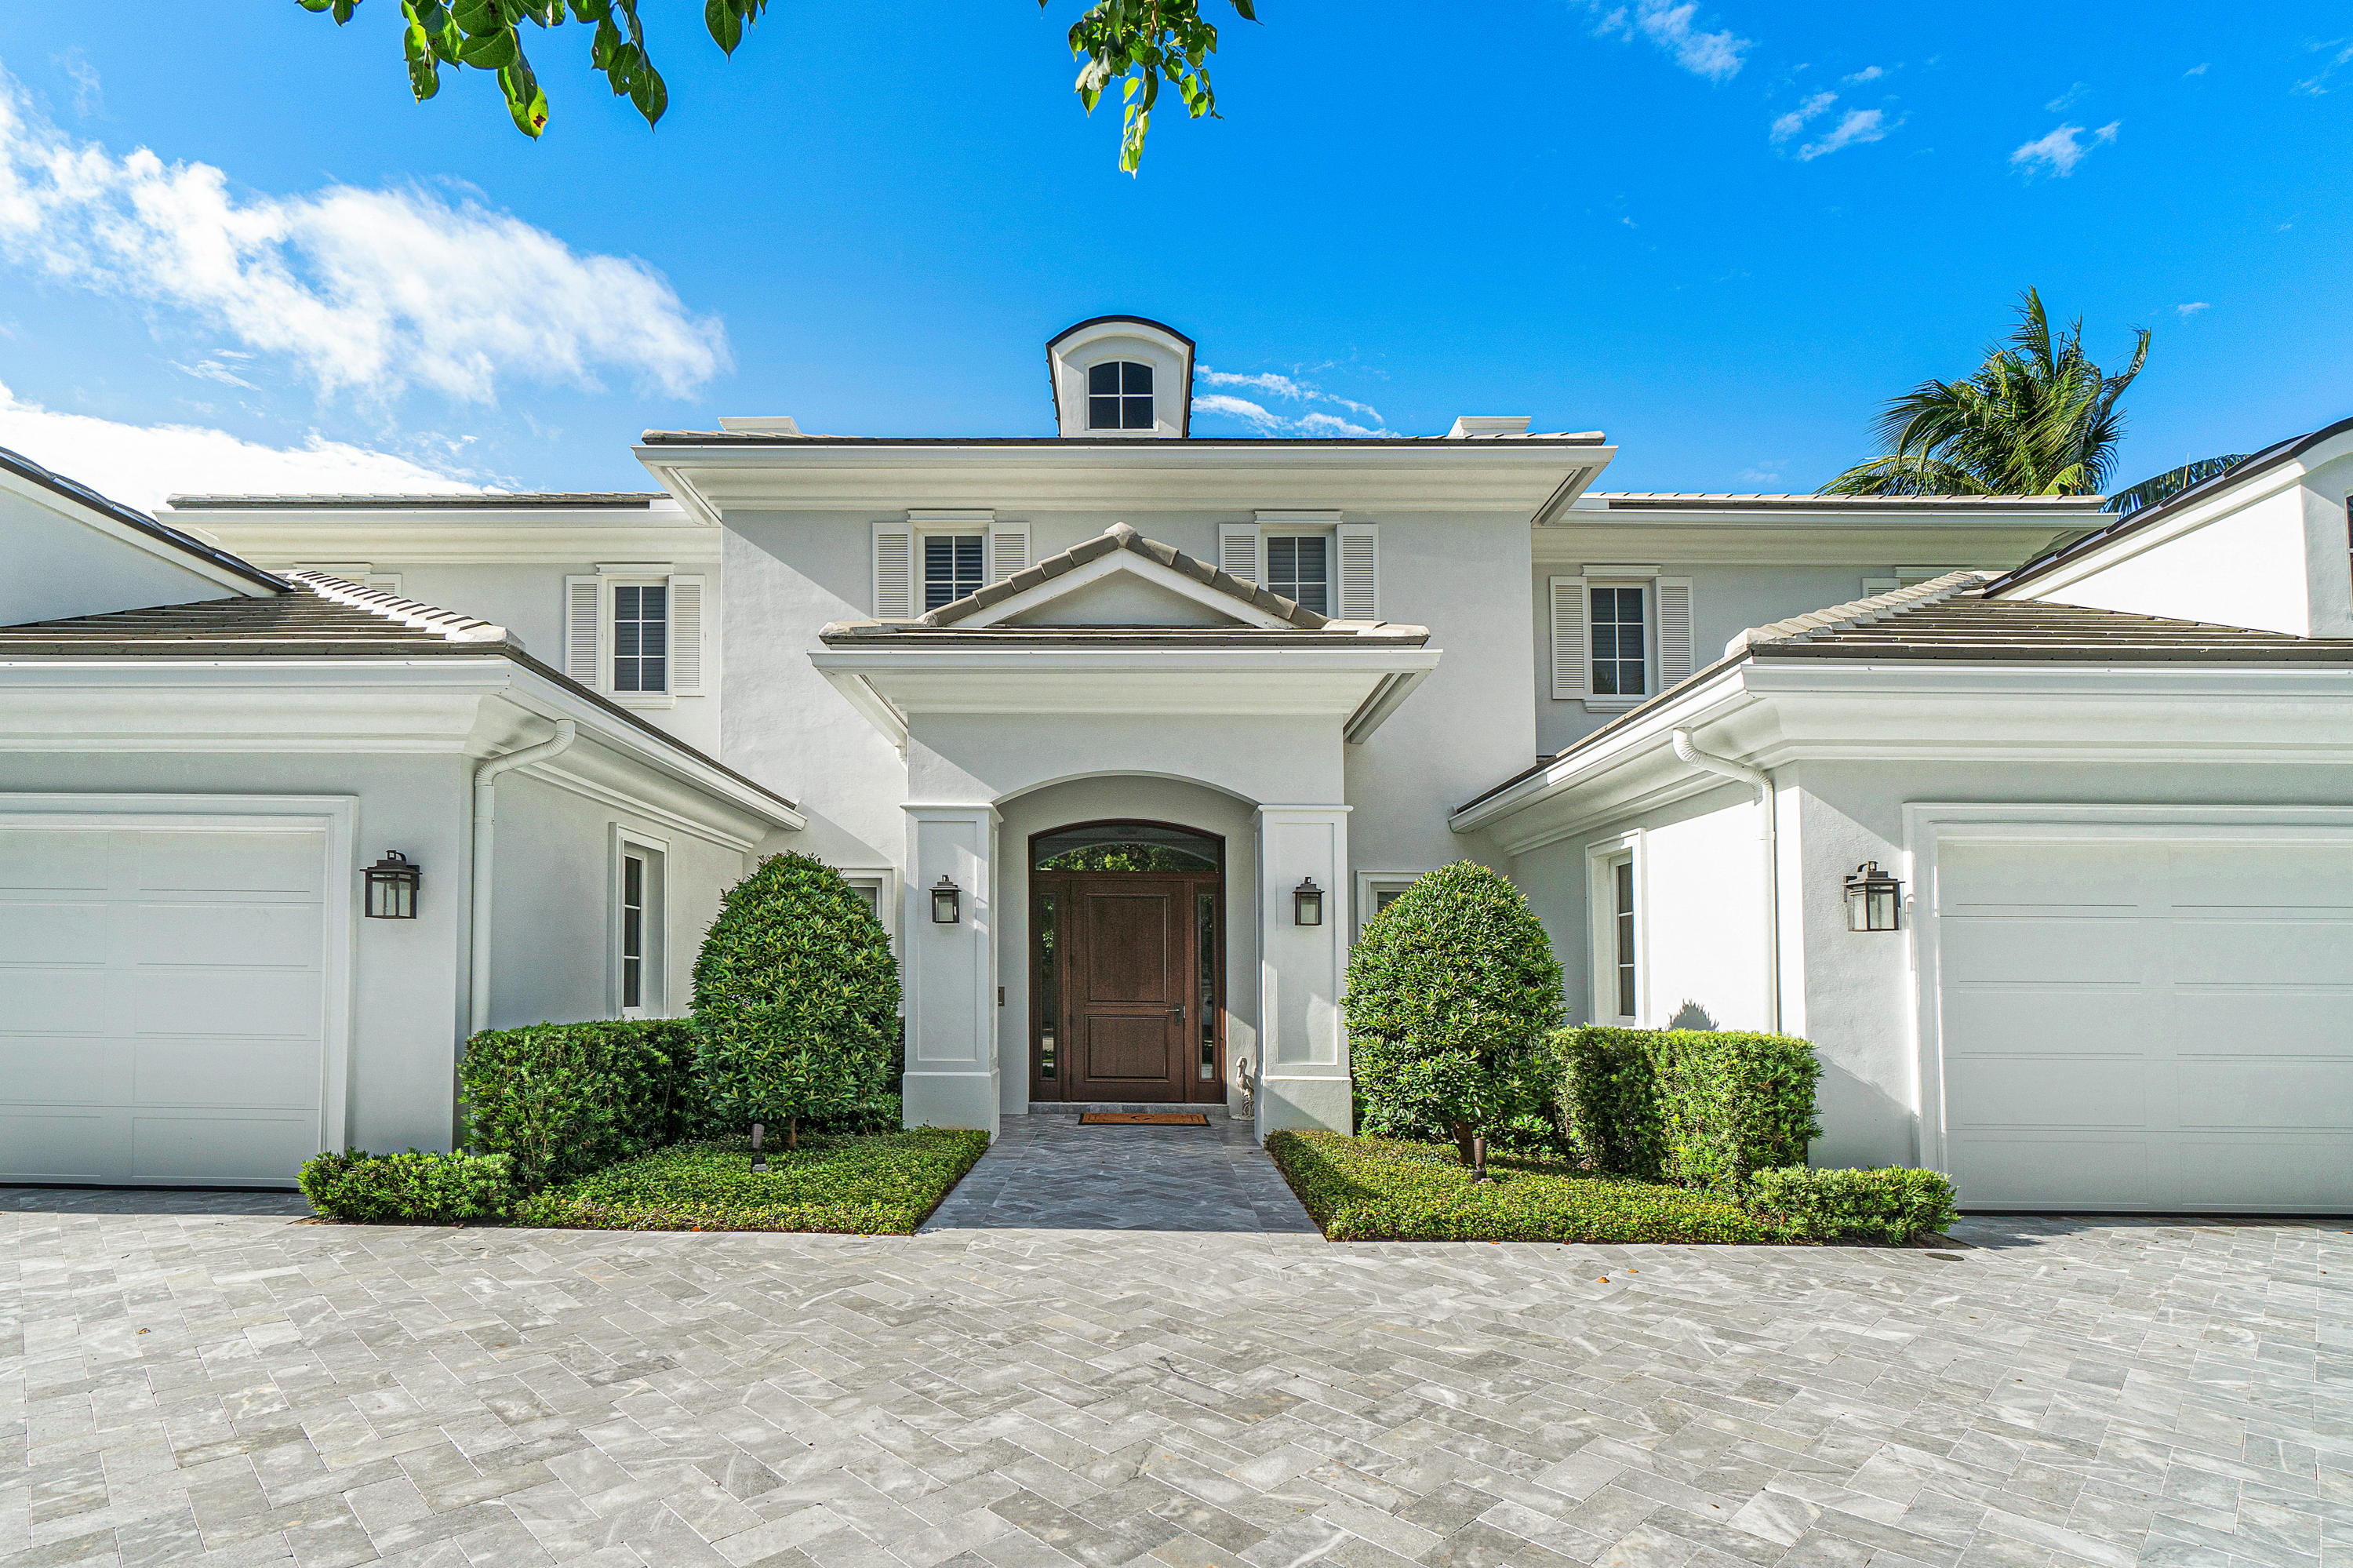 Home for sale in ROYAL PALM YACHT & CNTRY CLUB LT 8 BLK Boca Raton Florida